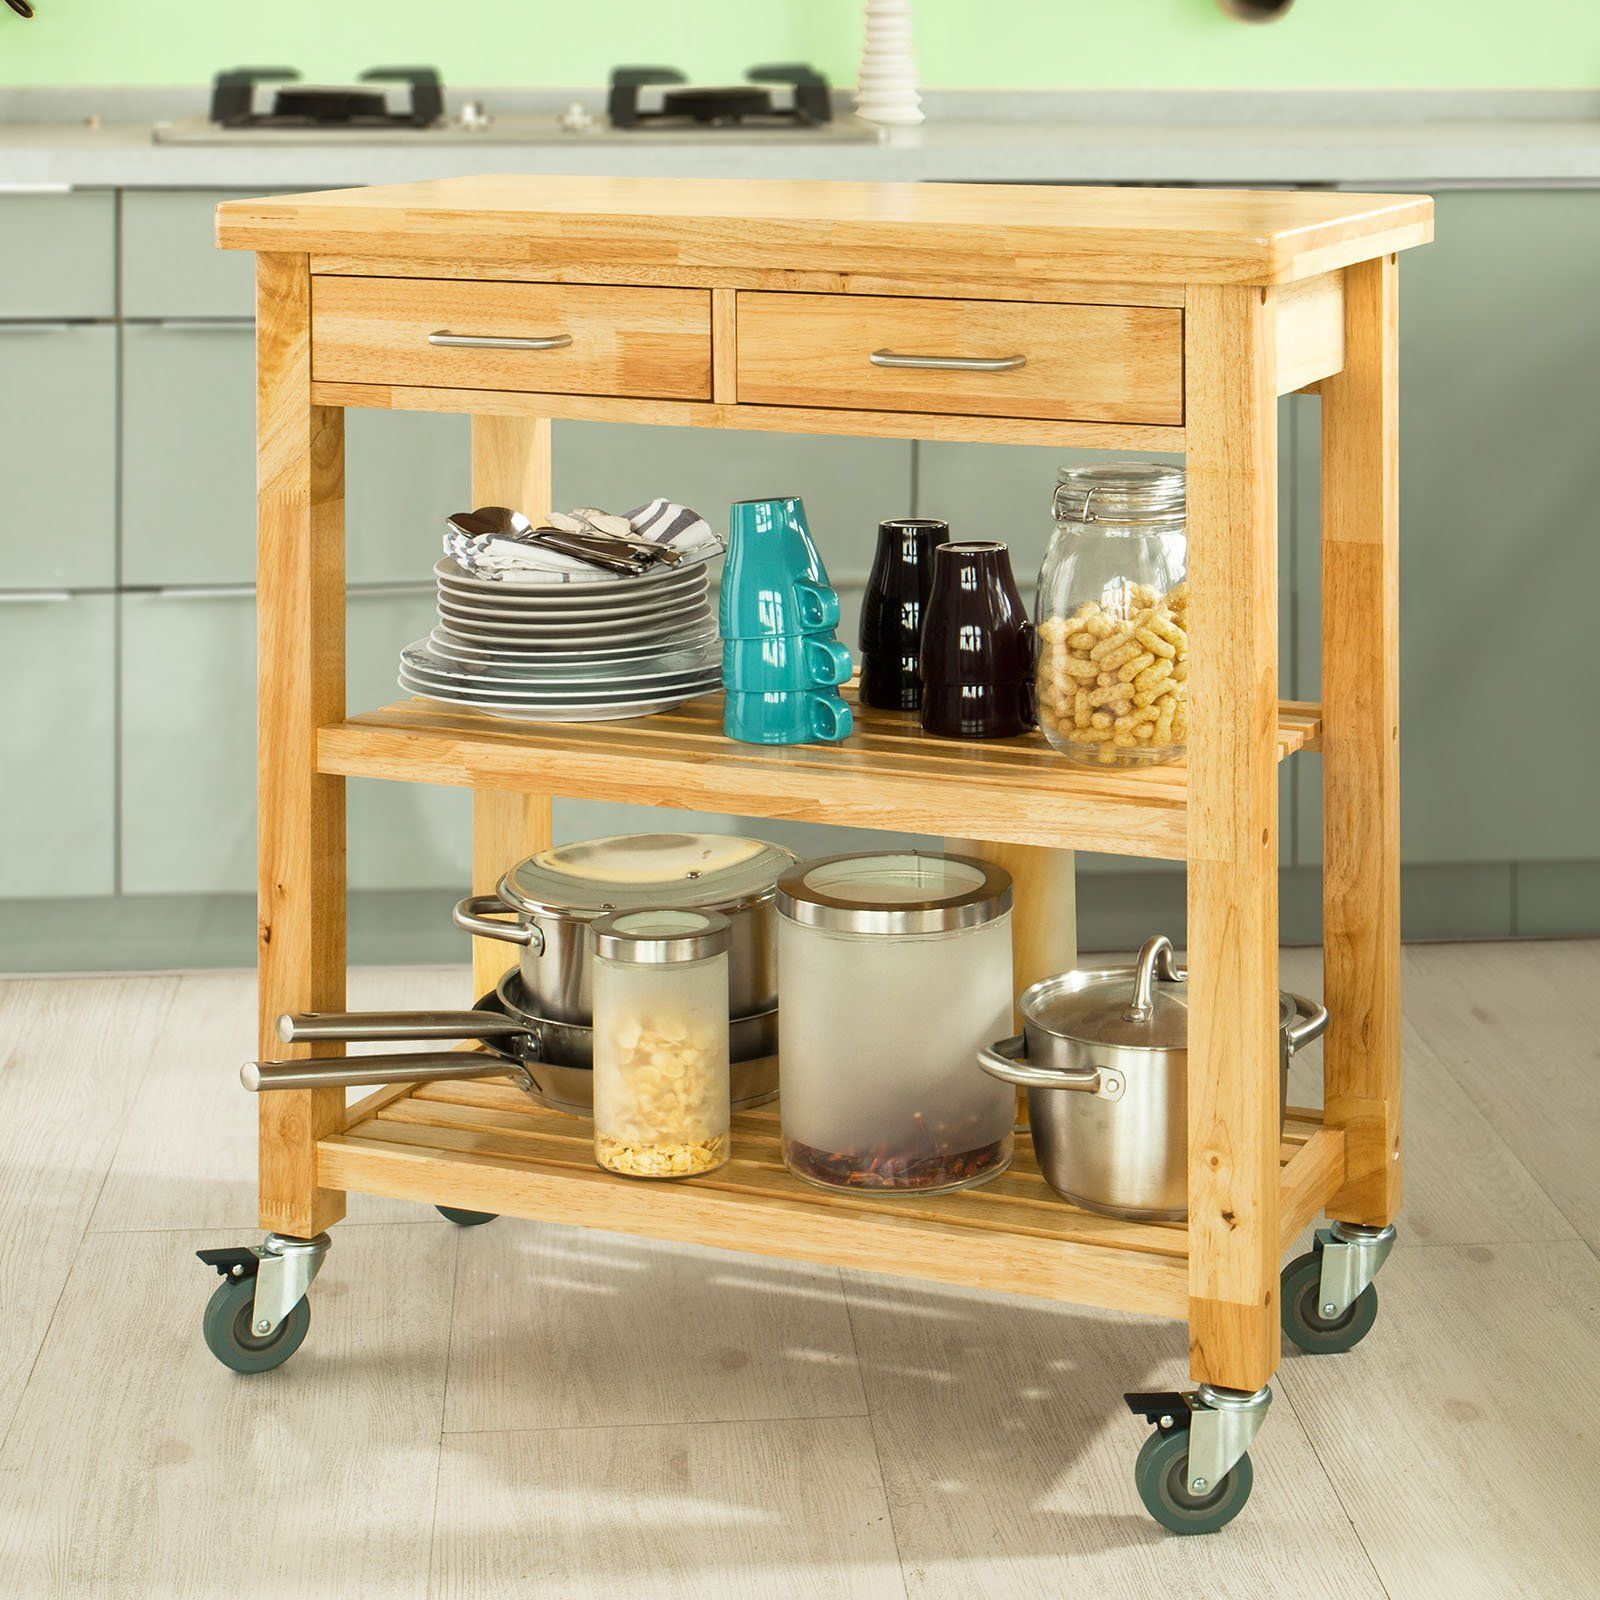 Amazon com sobuy fkw24 n natual rubber wood kitchen trolley cart with two drawers shelves kitchen storage trolley